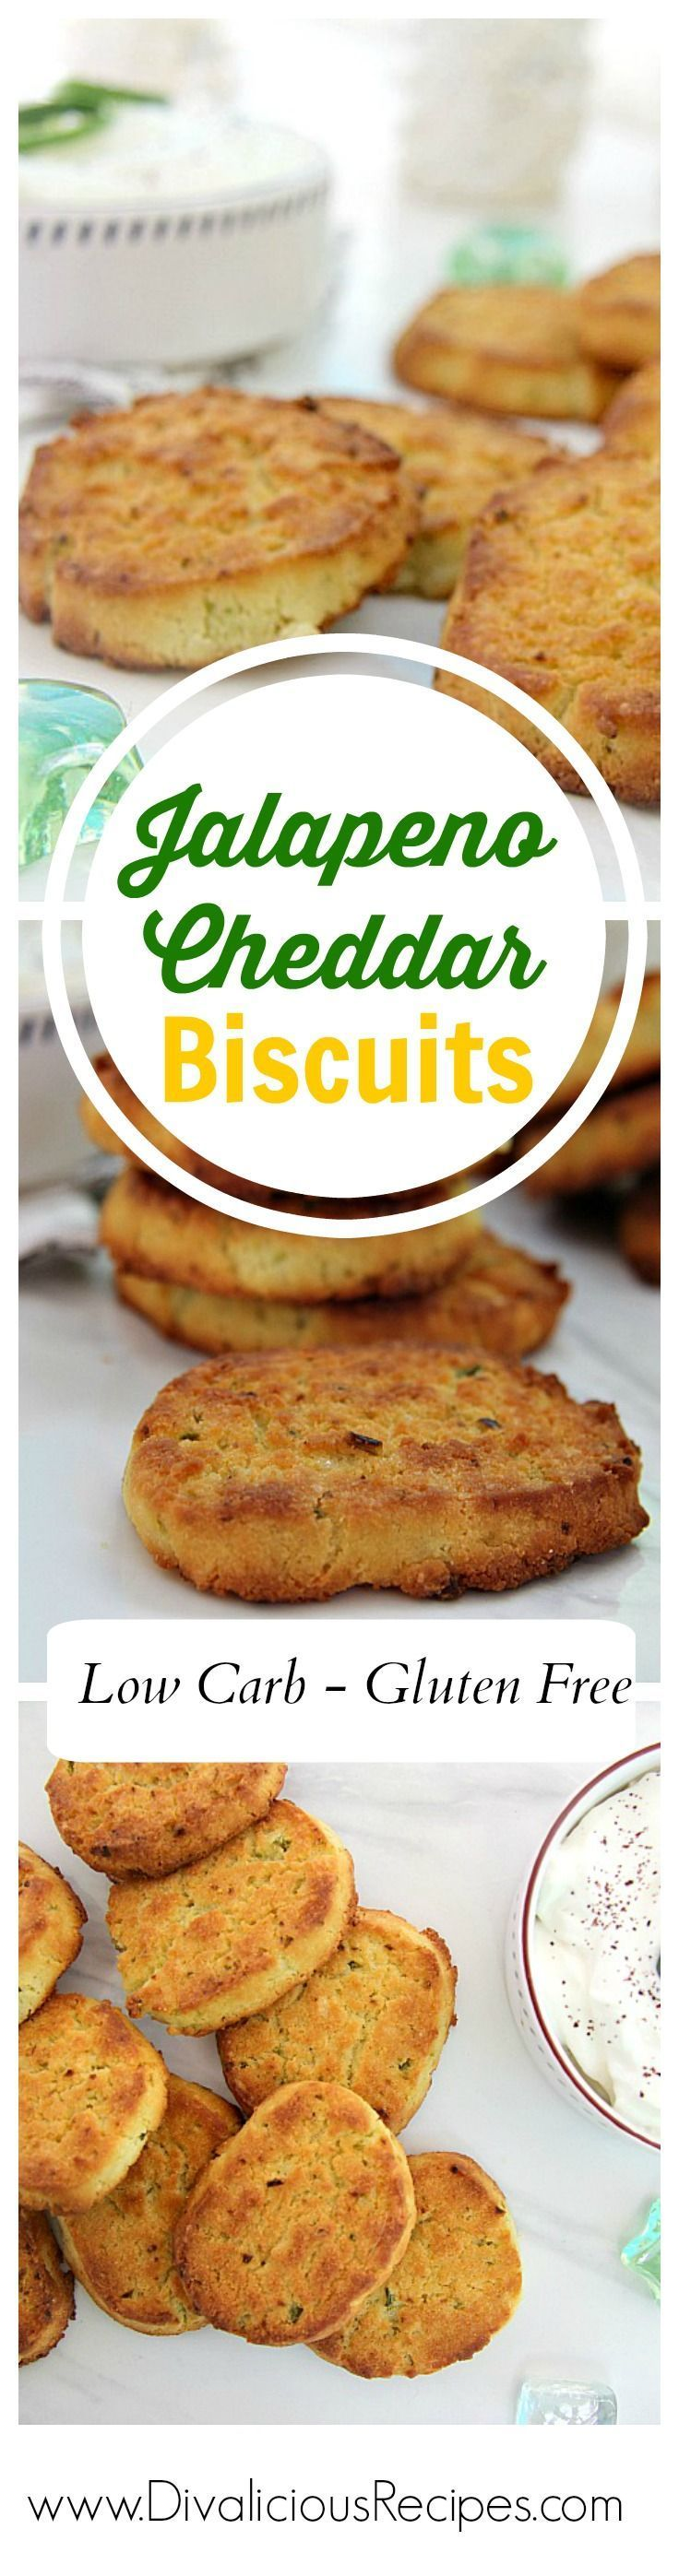 Jalapeno Cheddar biscuits are a delicious melt in your mouth with a punch bite.  Baked with coconut flour they are low carb and gluten free.  At only 1g net carb each biscuit you can happily have a feast!